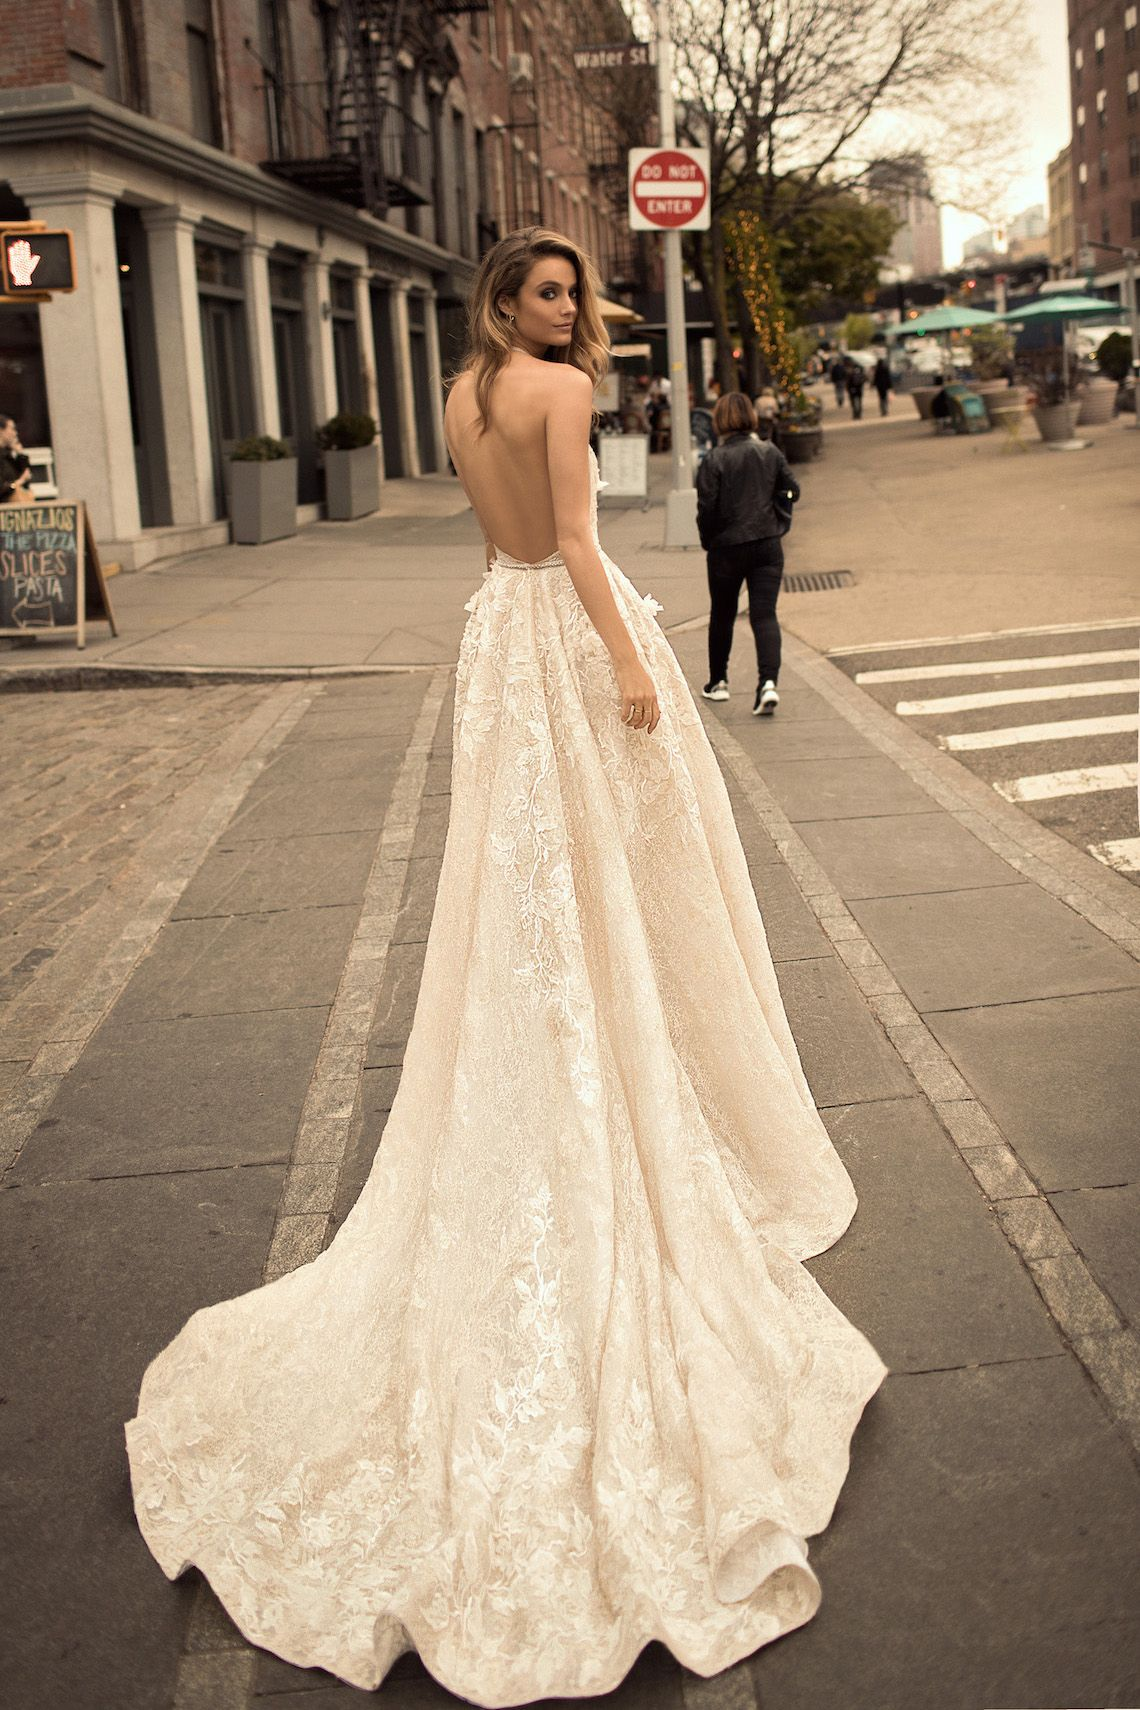 Dramatic wedding dresses  World Exclusive Berta Wedding Dress Collection   Wedding dress